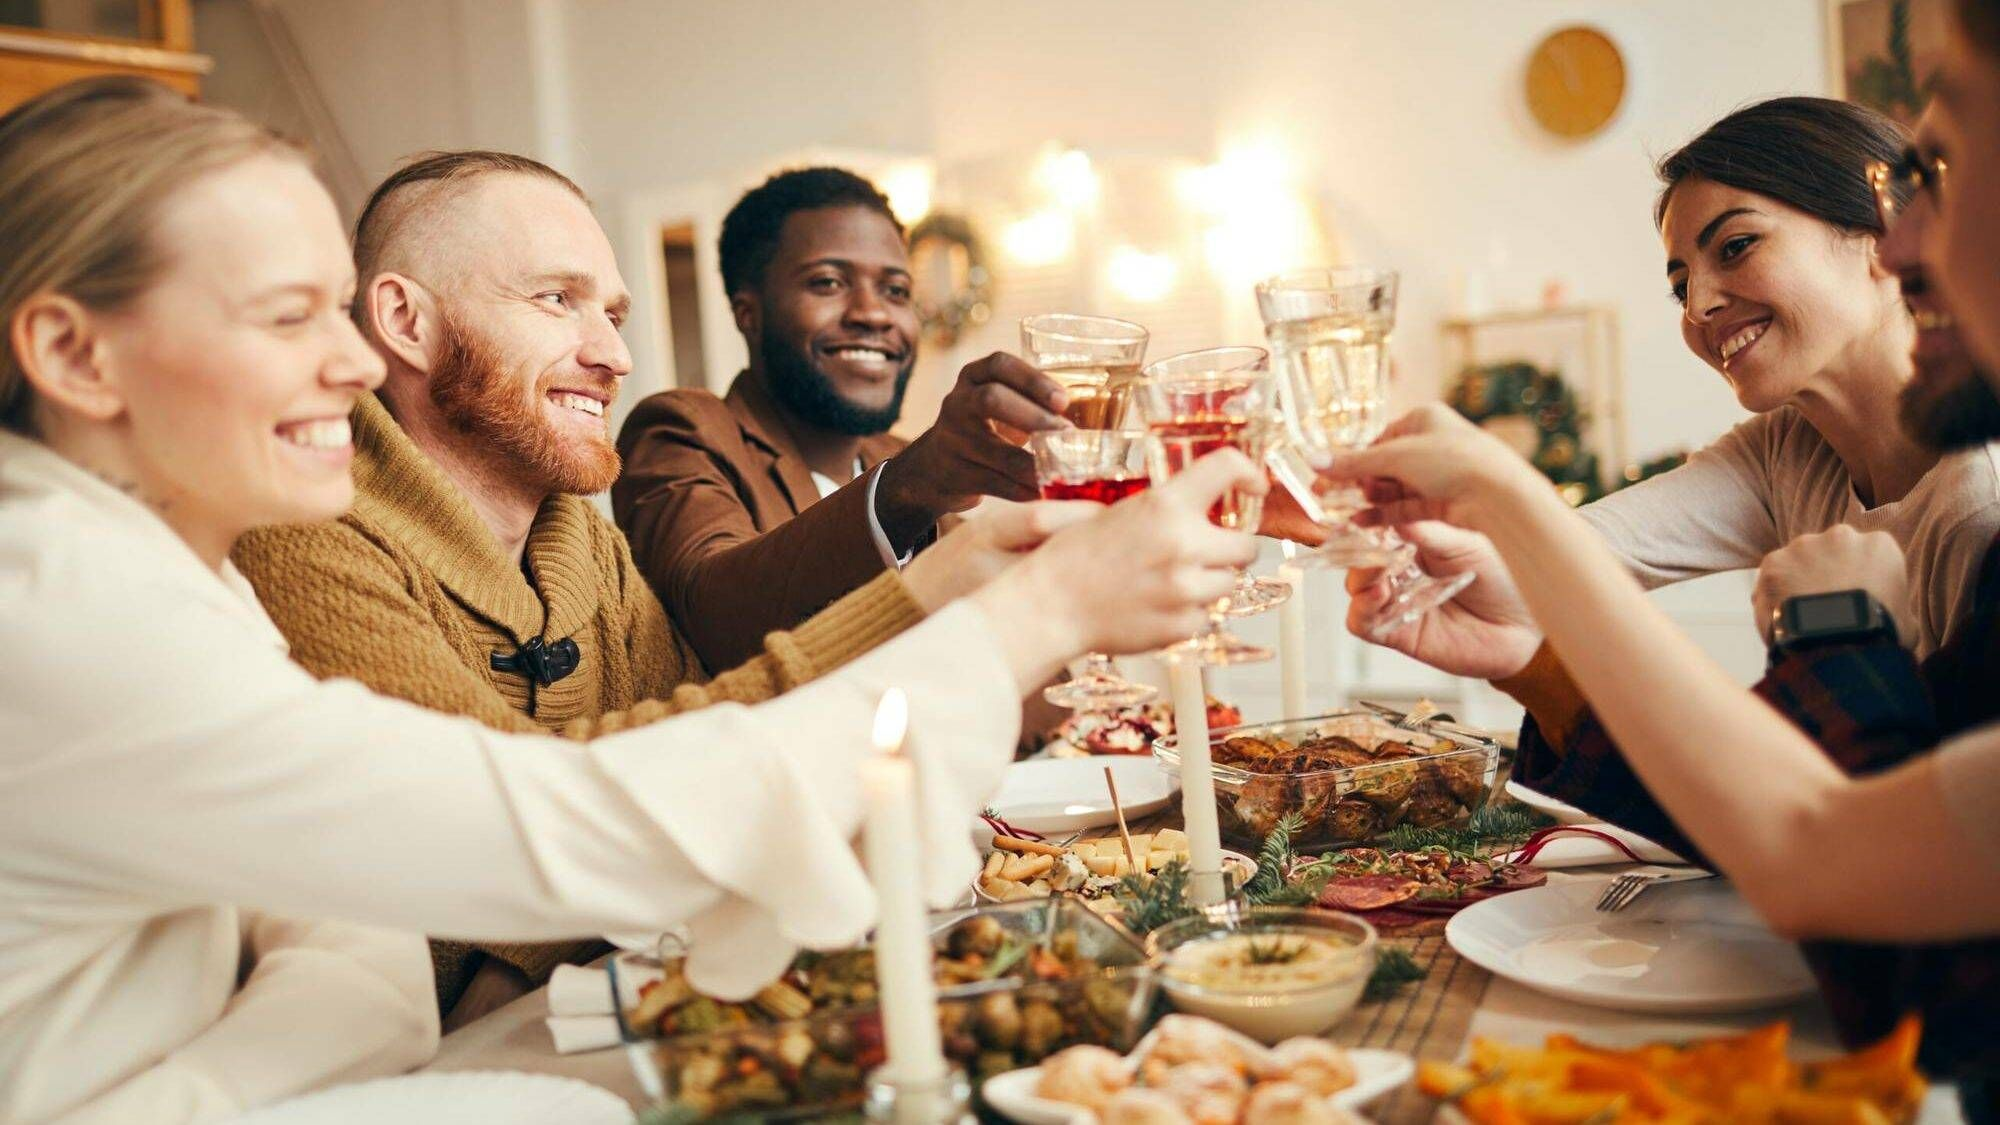 Multi-ethnic group of people raising glasses sitting at beautiful dinner table celebrating Christmas with friends and family, holidays, rewire